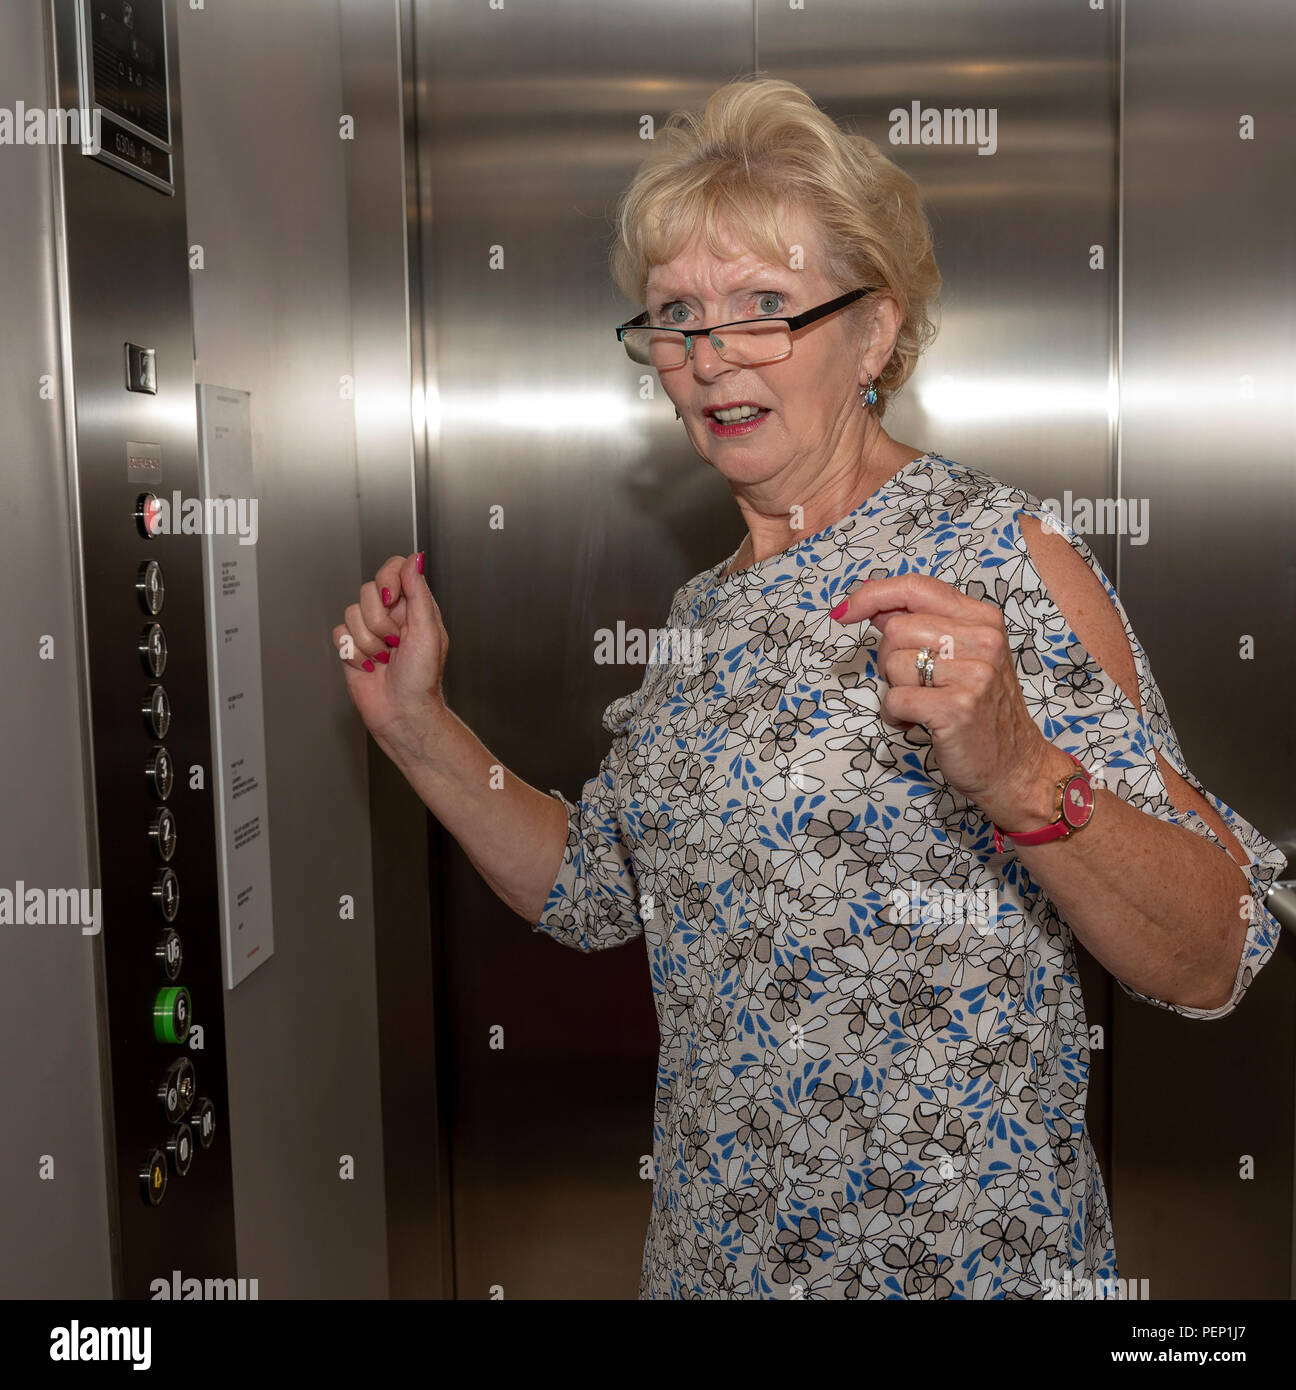 Elderly woman stuck in a lift, raising her arms in fright. - Stock Image